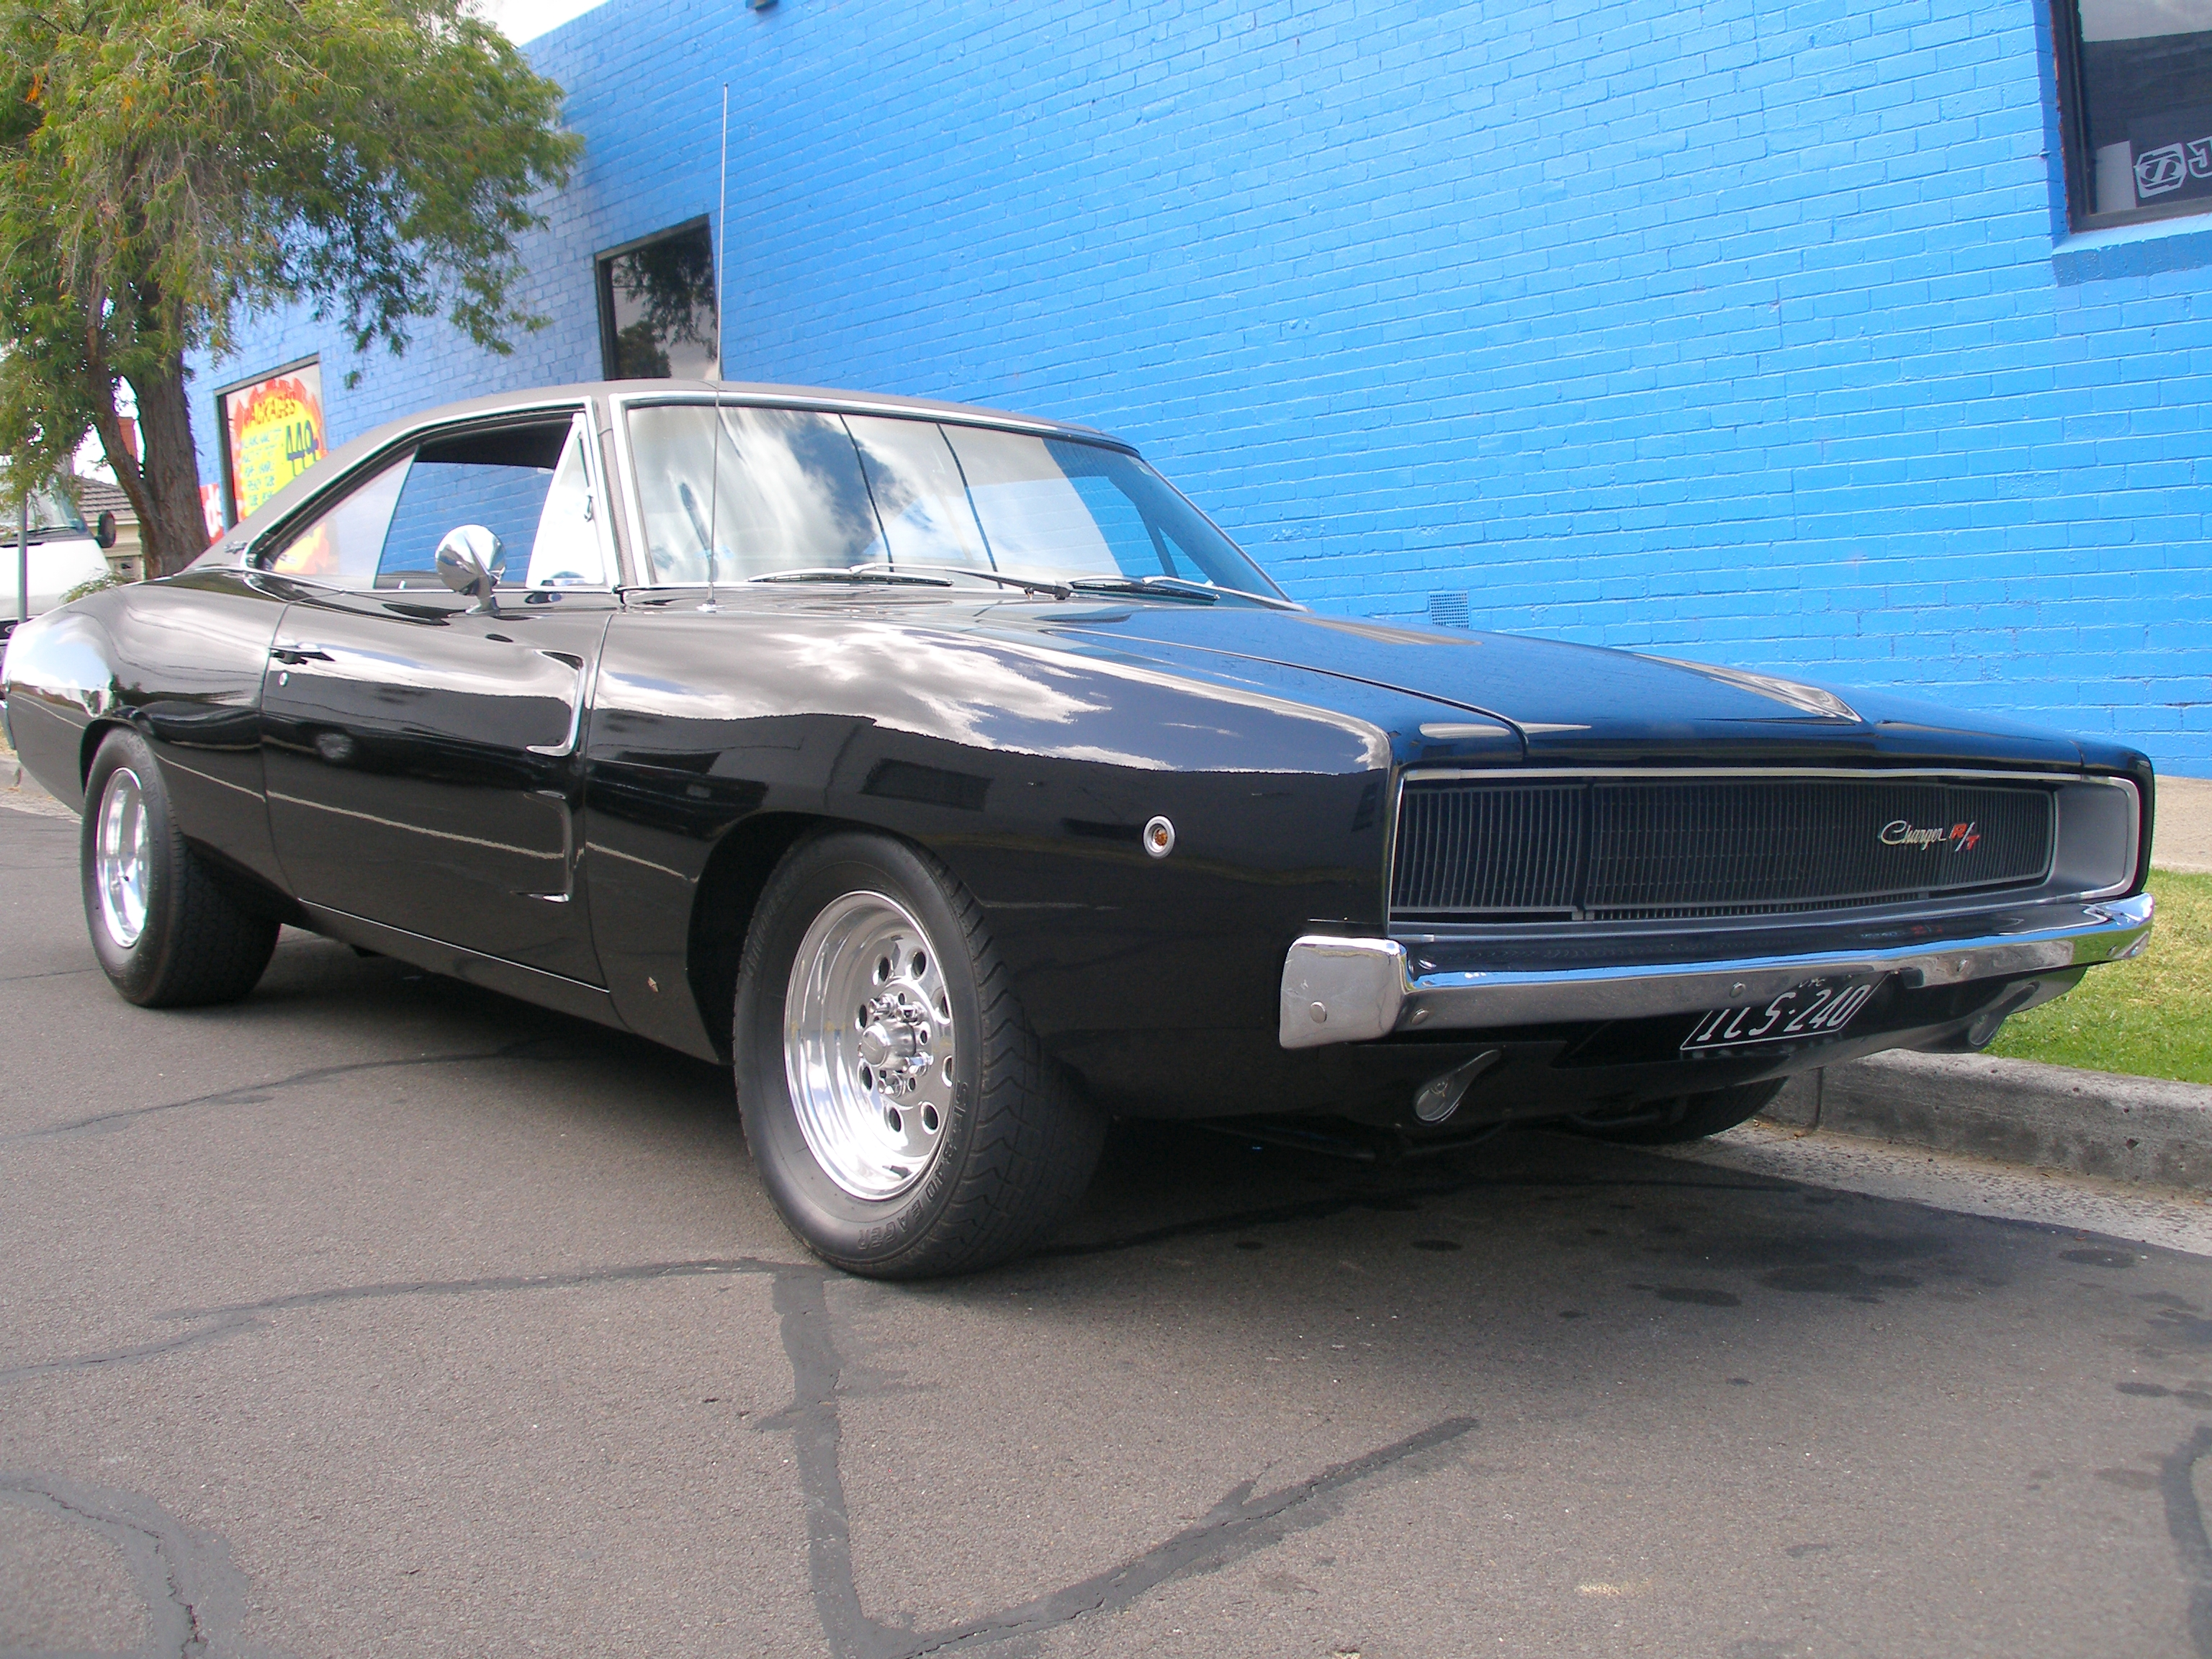 69 Charger R/T Best model imo.